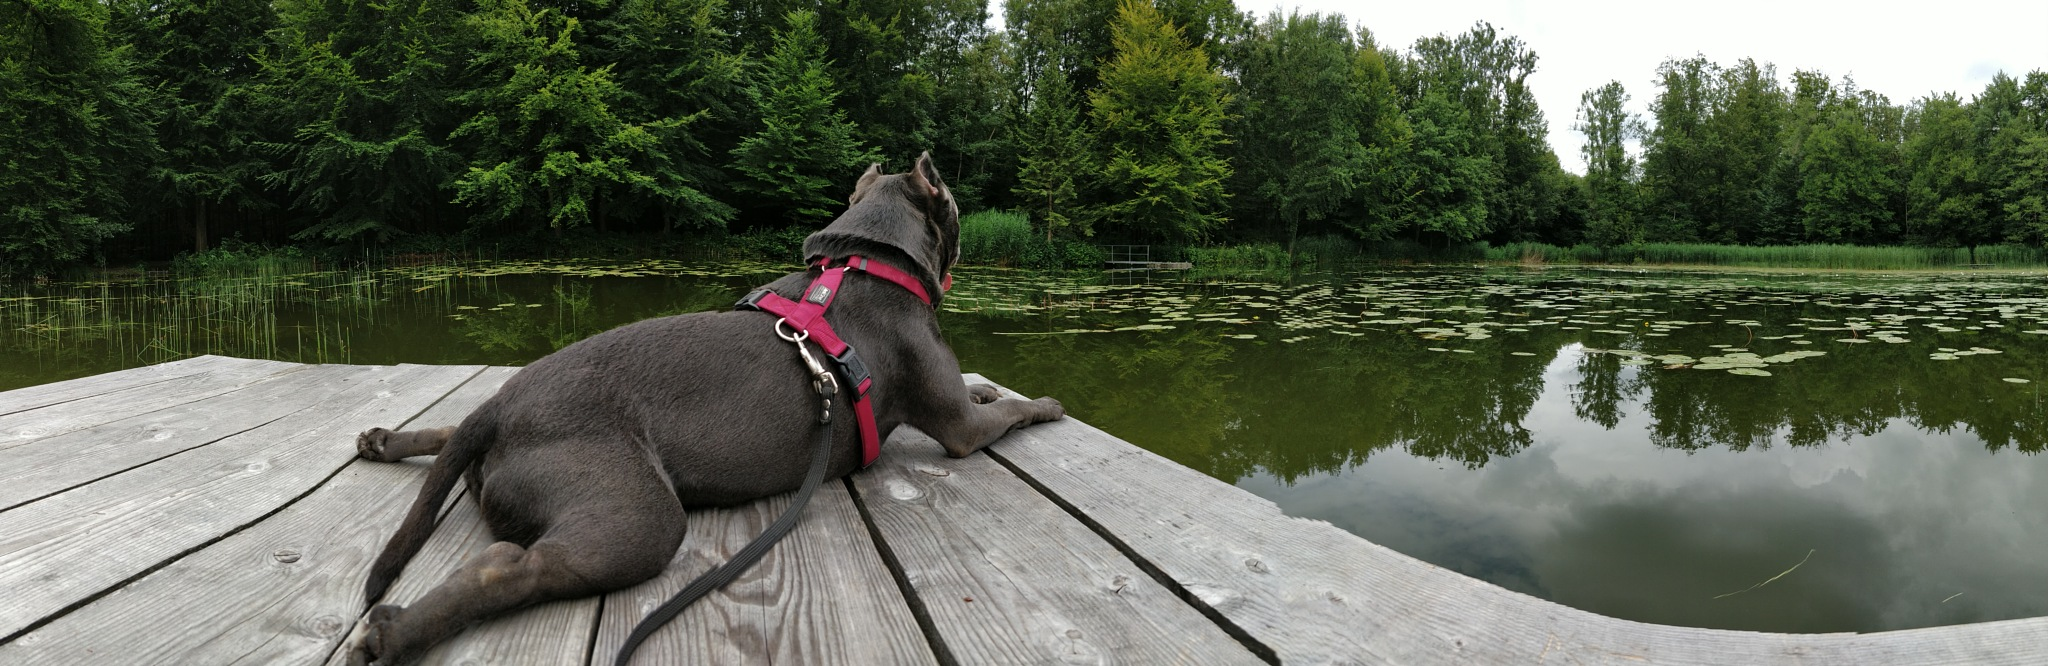 Dog resting @ lake by Lesley Drd